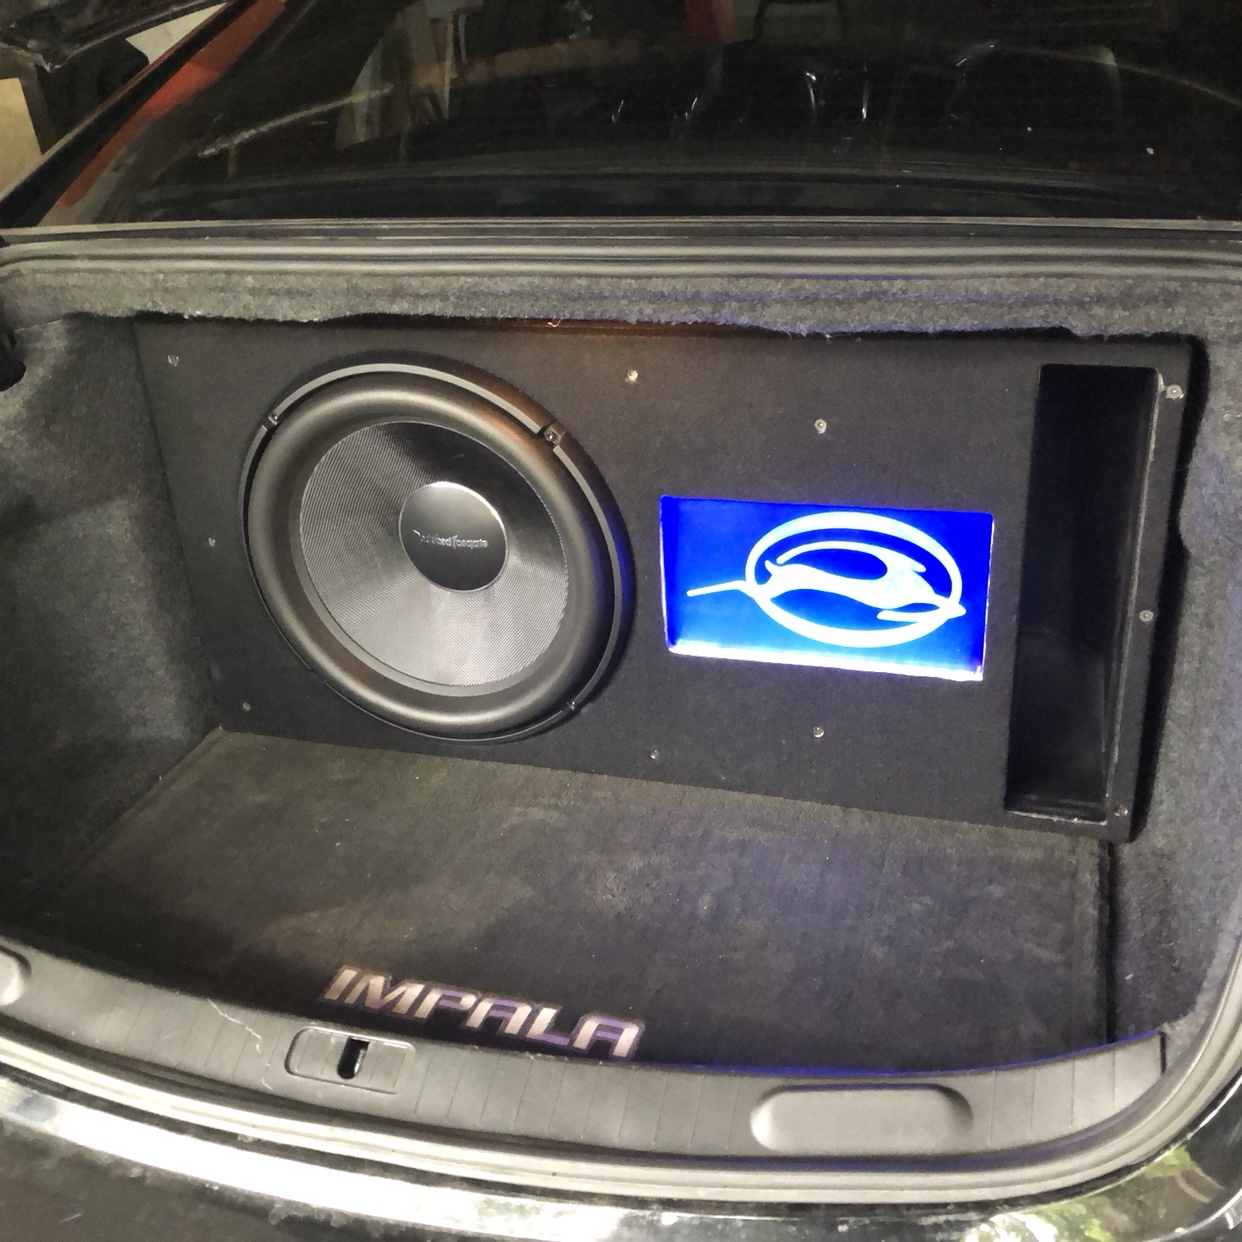 2014+ impala Bose stereo system bypass and upgrade-img_9625.jpg